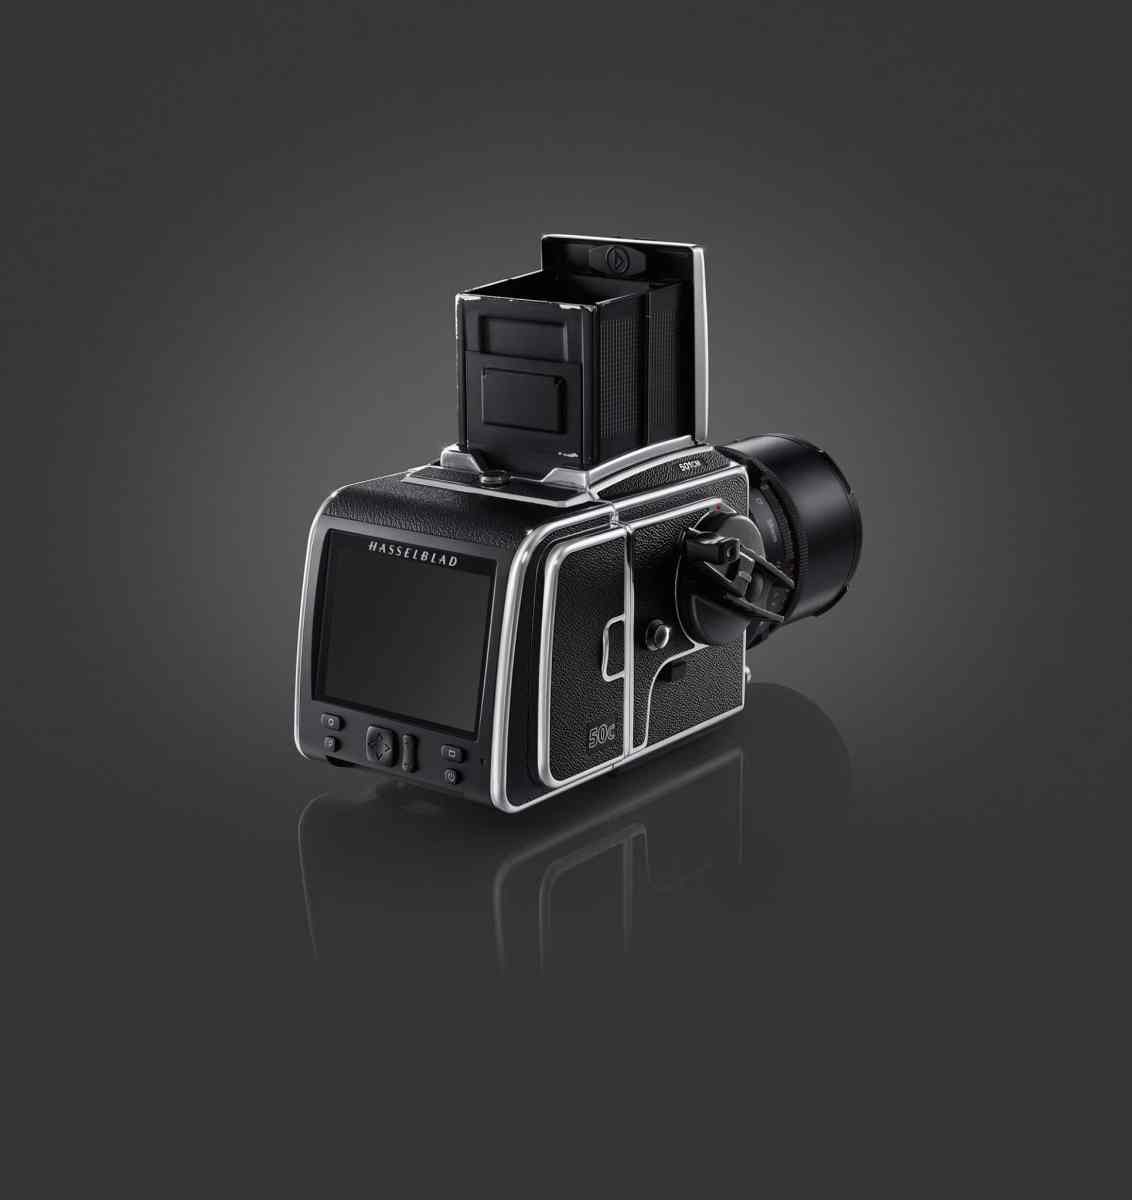 Hasselblad CFV-50c CMOS Sensor Digital Back for V-system